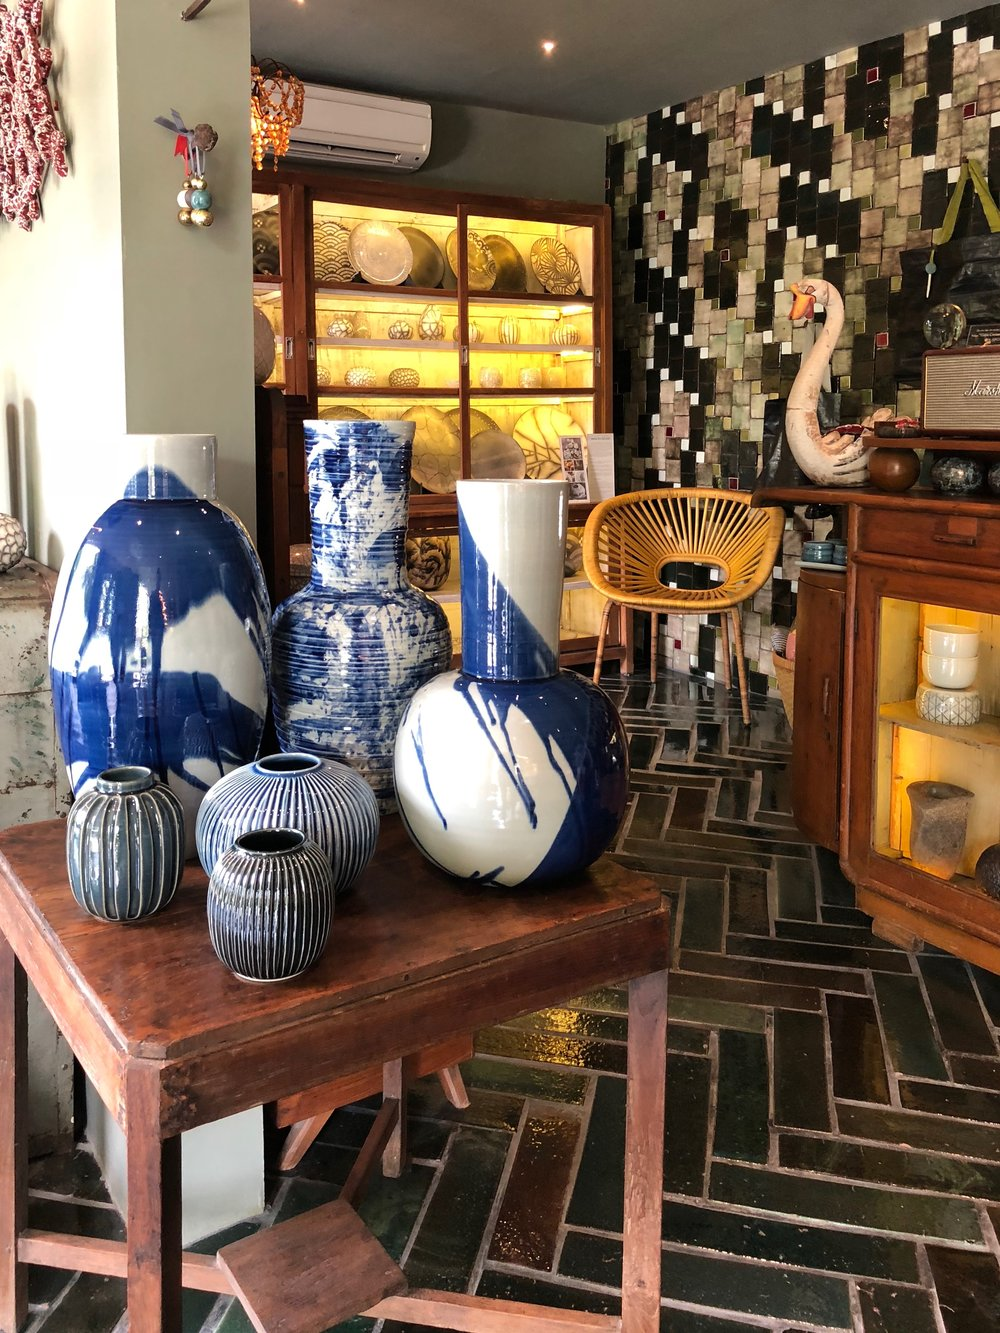 The Gaya Ceramic shop is like walking through an art exhibit